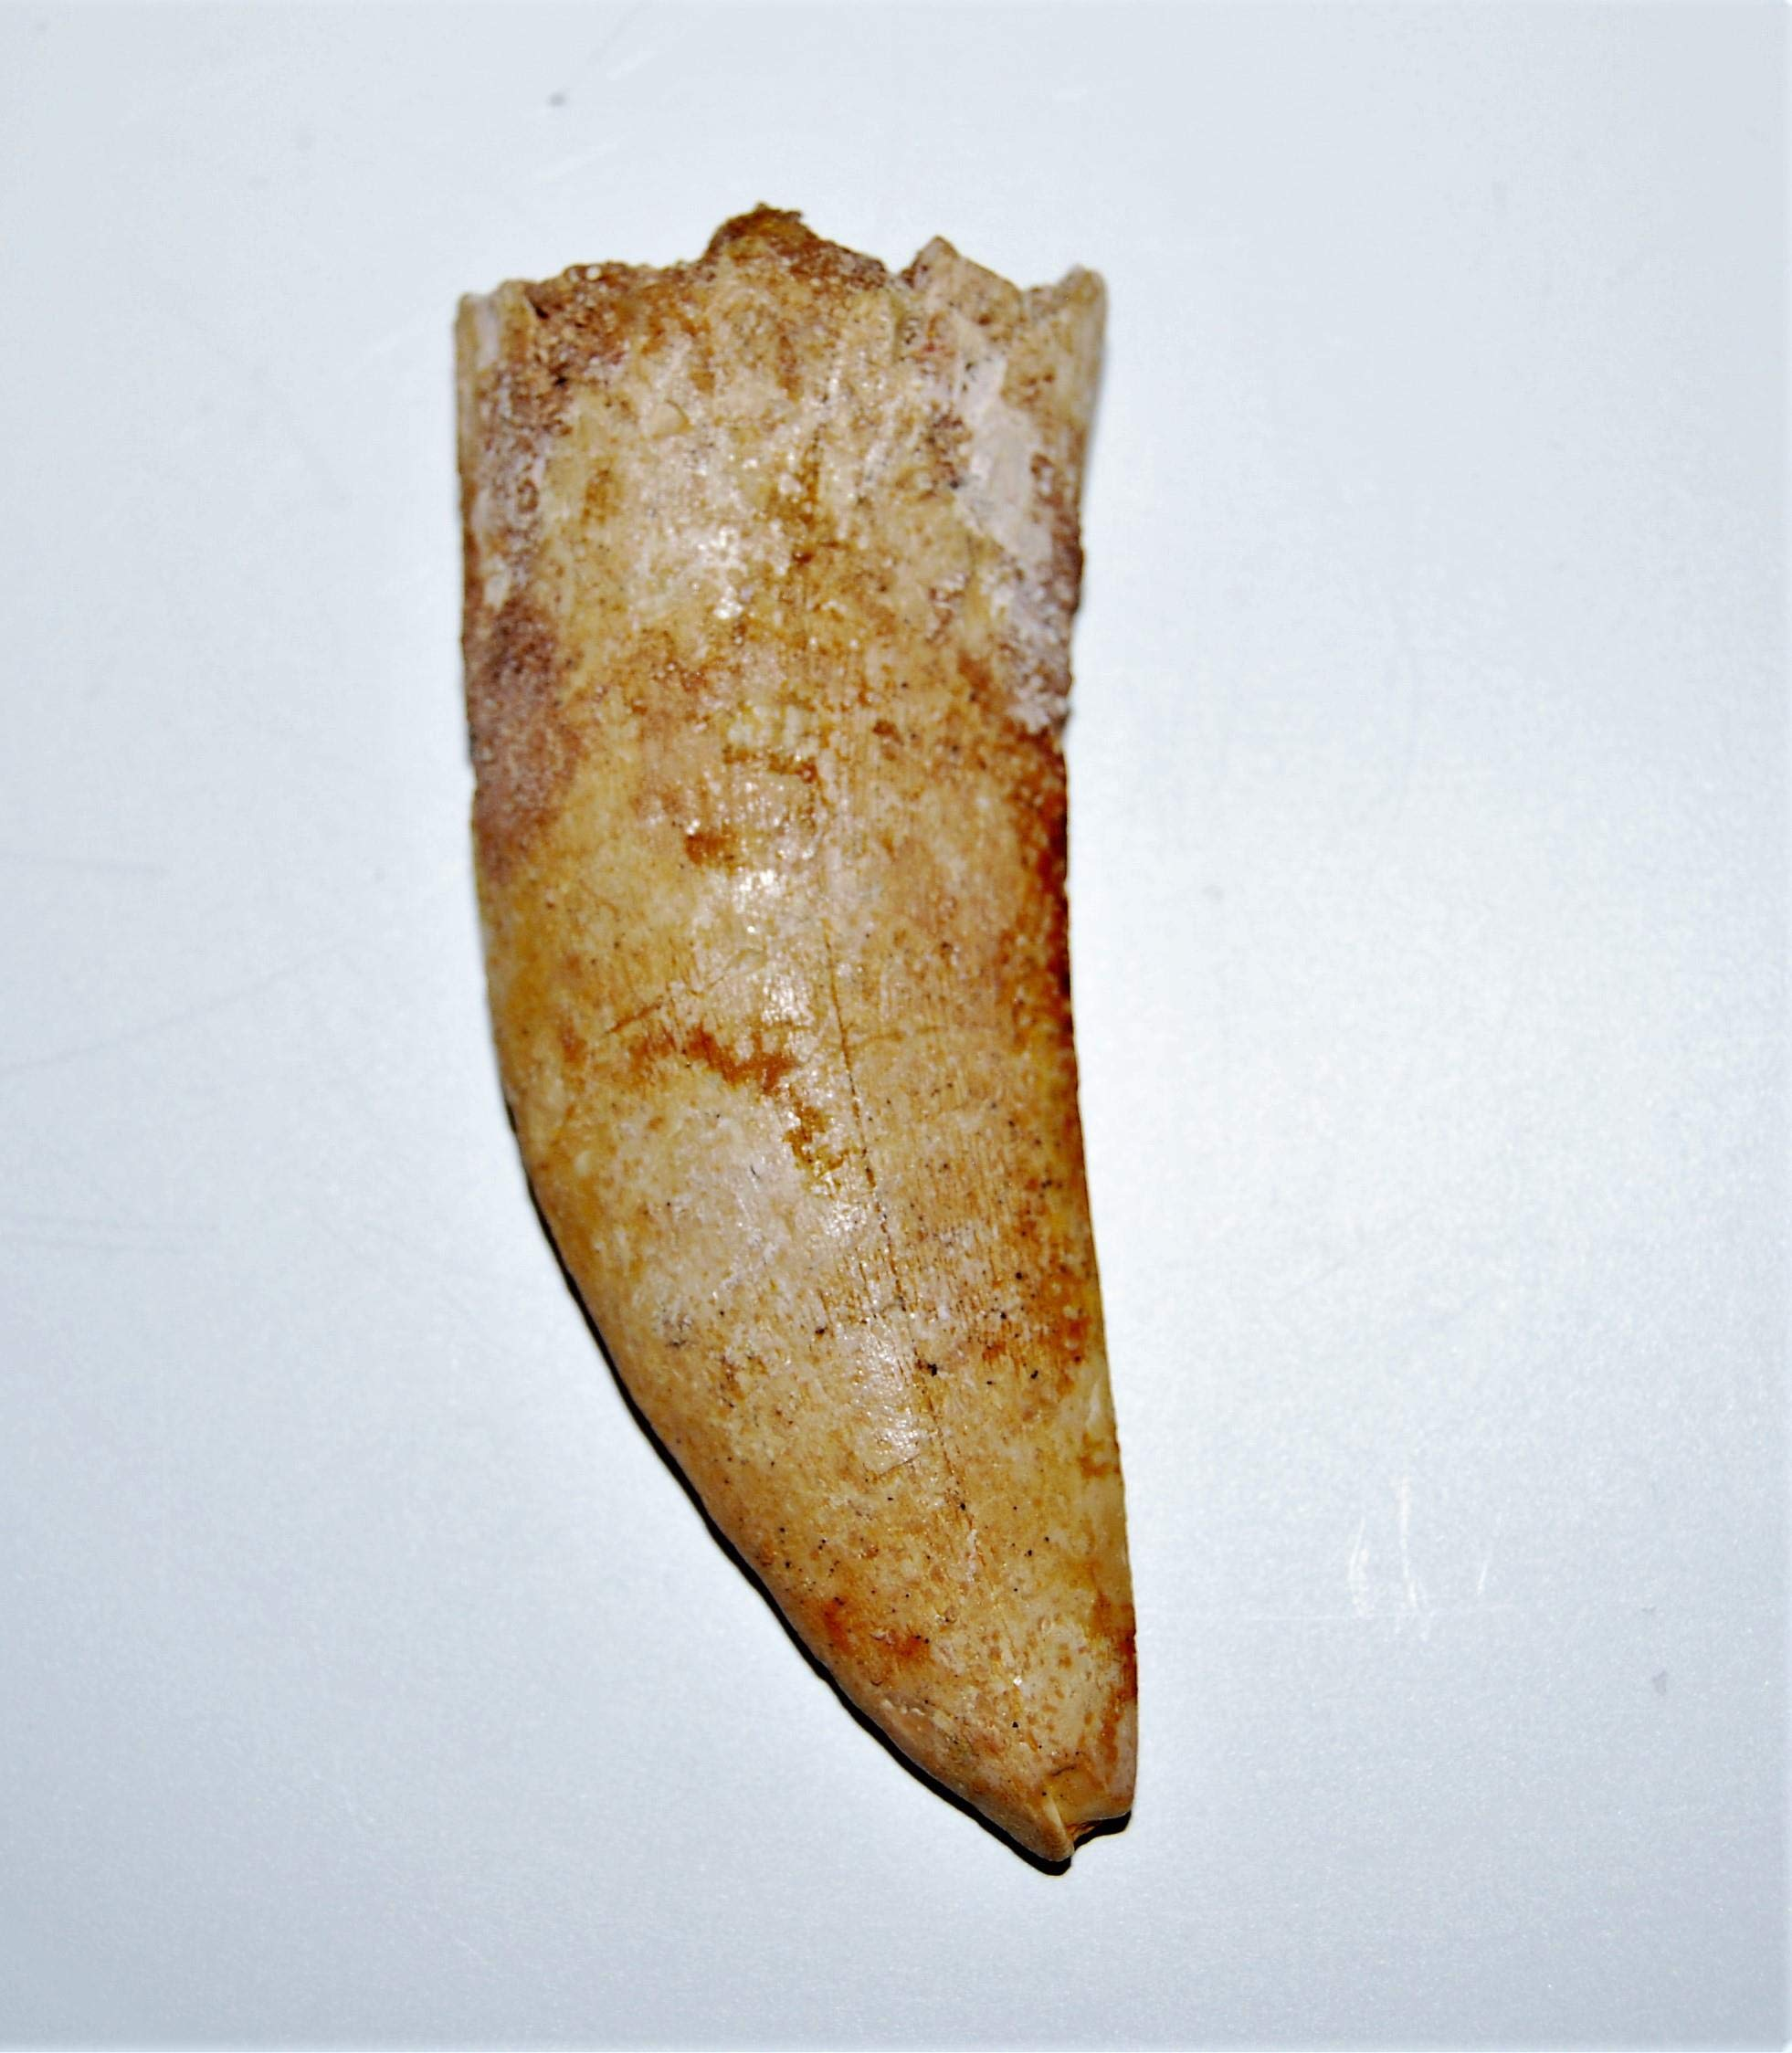 Carcharodontosaurus Dinosaur Tooth 2.878'' Fossil African T-Rex LDB #14167 15o by Fossils, Meteorites, & More (Image #2)